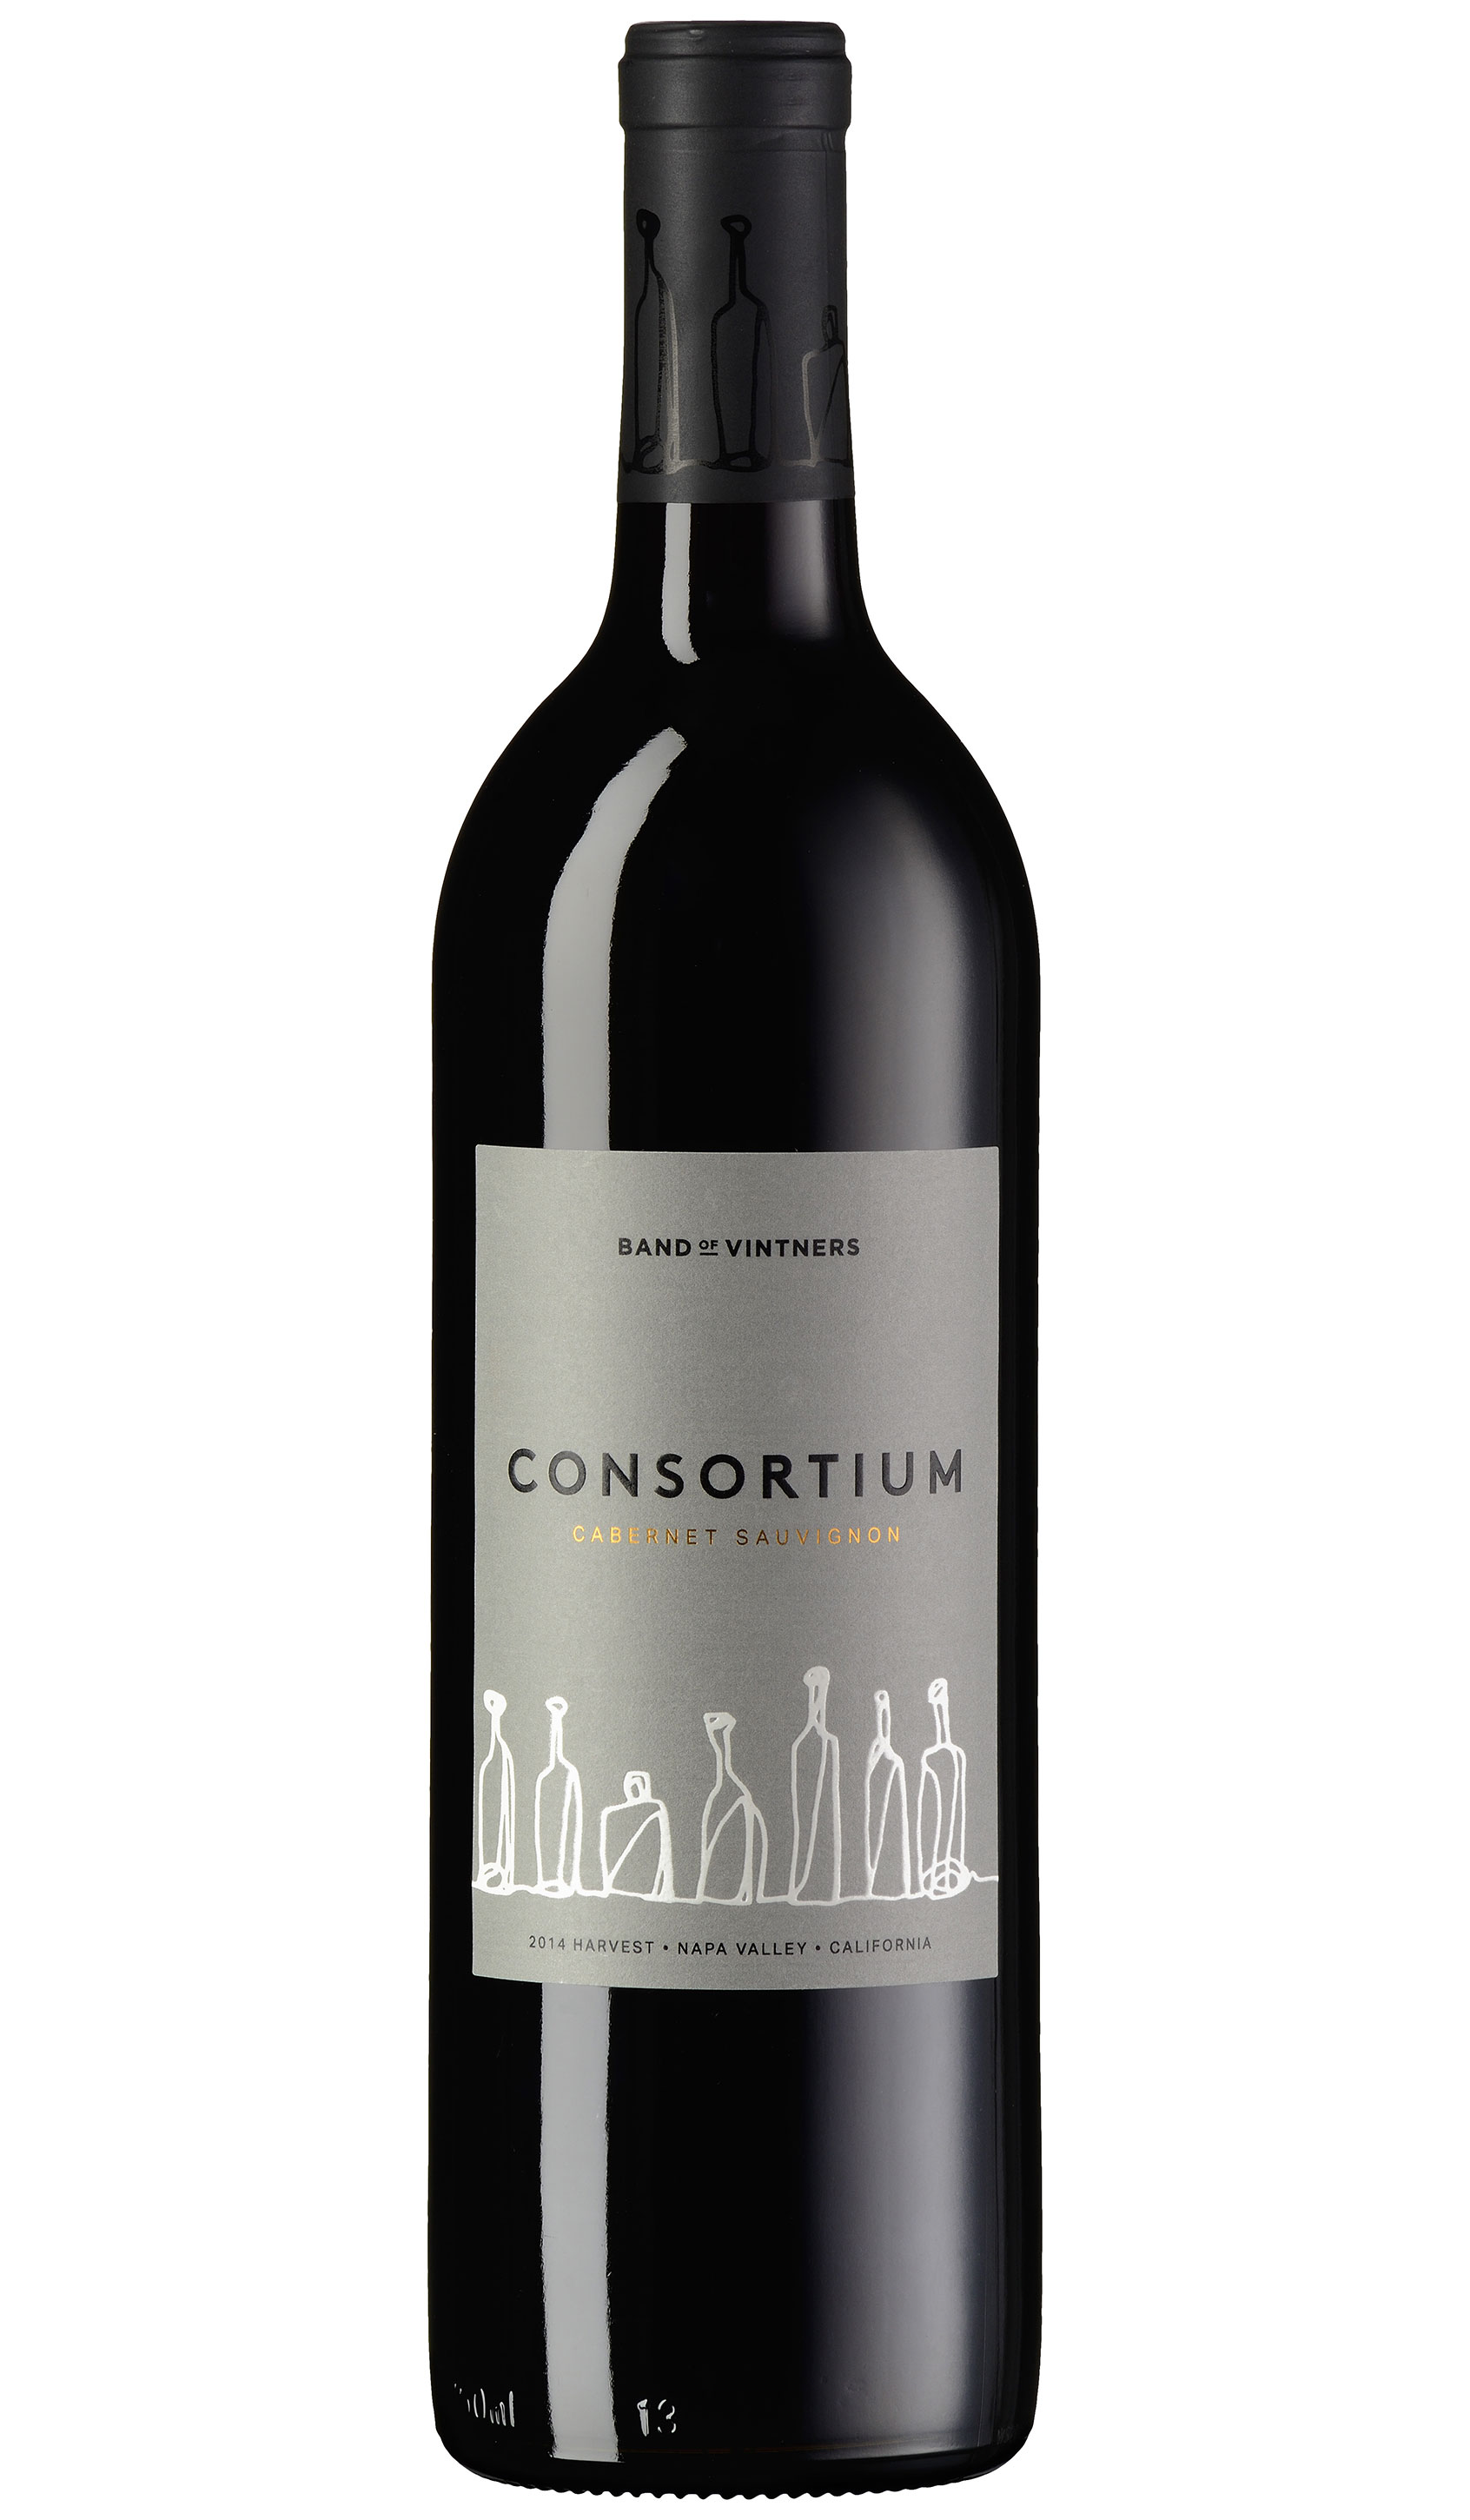 Cabernet Sauvignon, Consortium